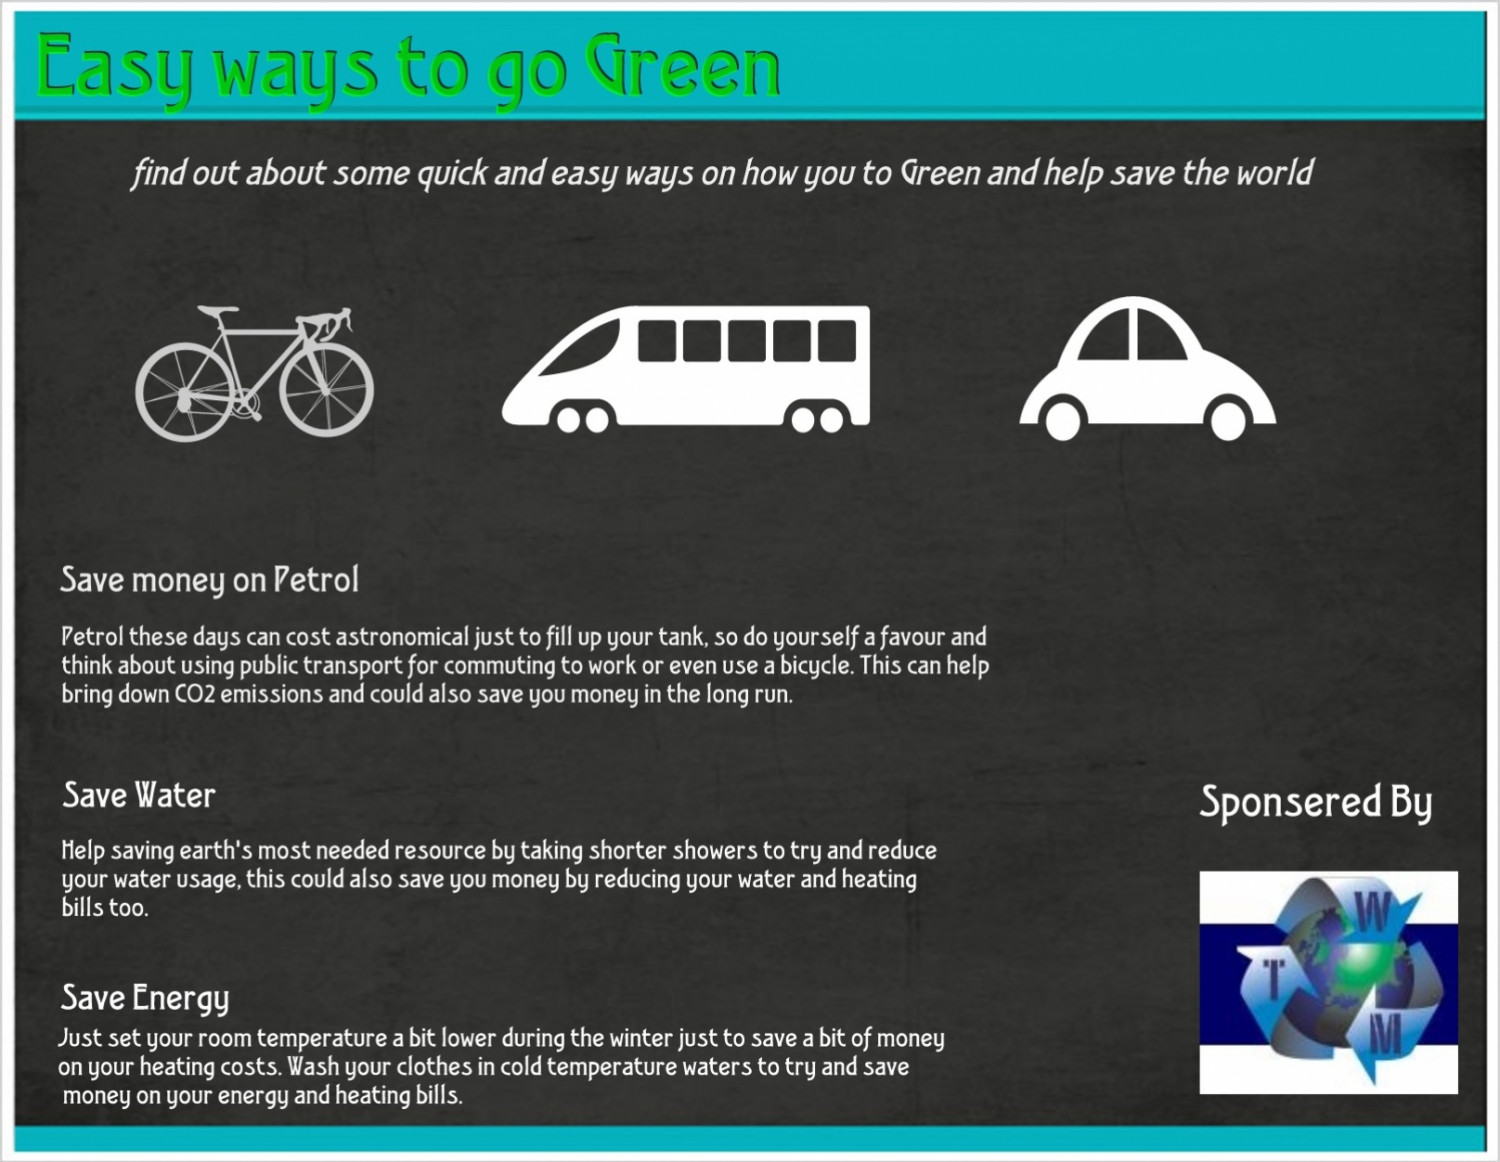 Easy ways to go Green Infographic